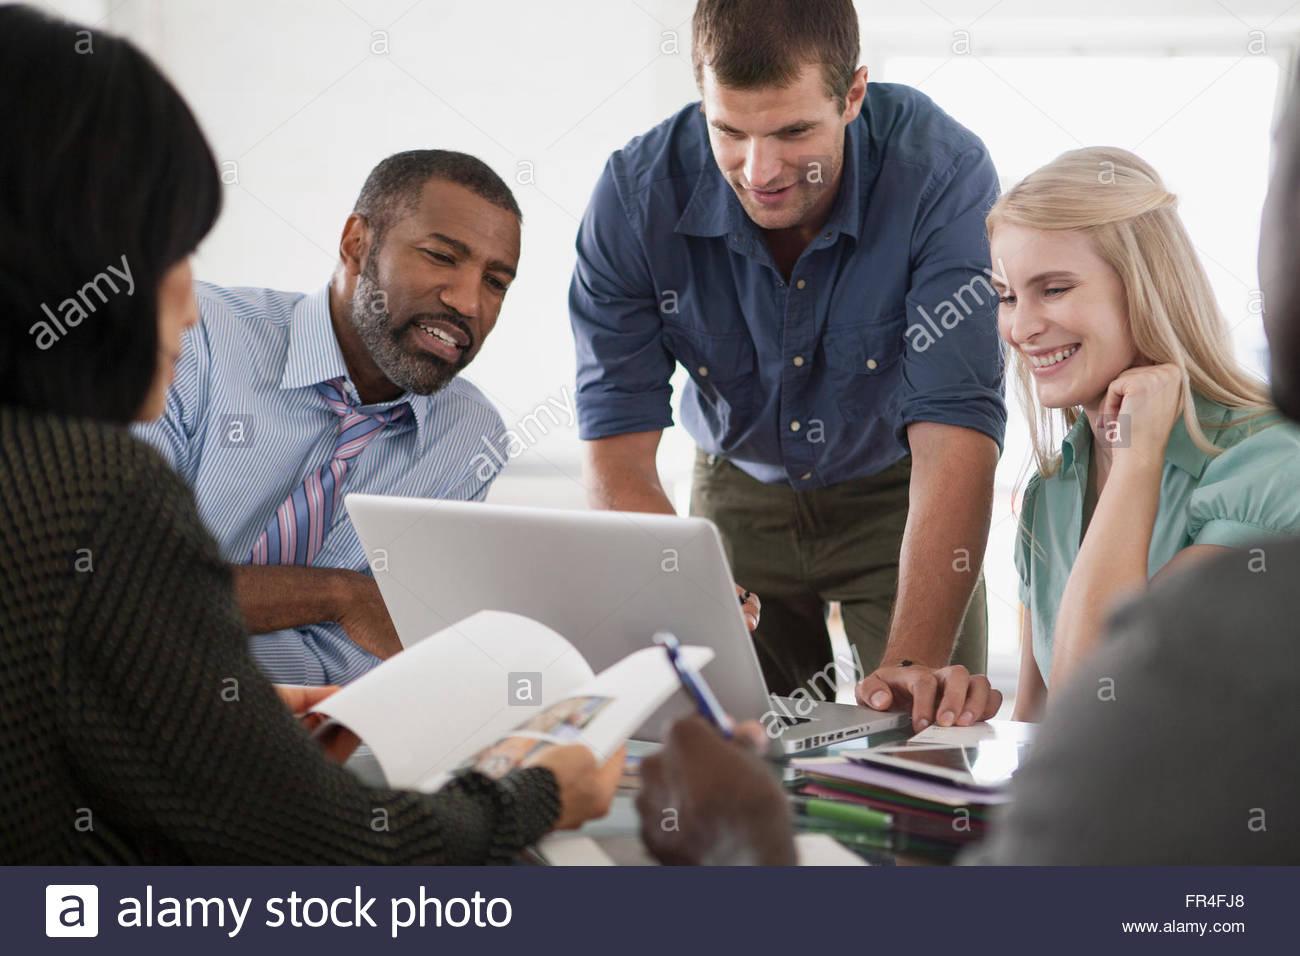 three people looking at laptop in business meeting - Stock Image